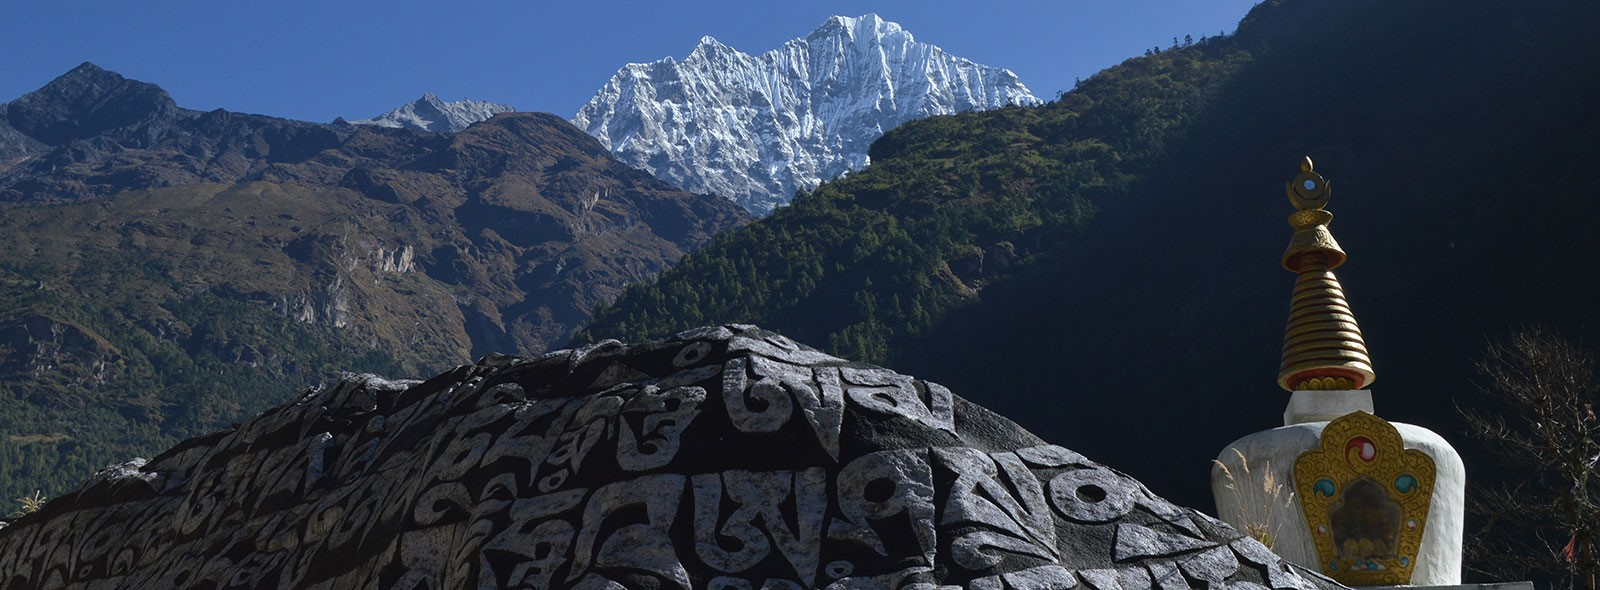 Trekking package for Everest Region